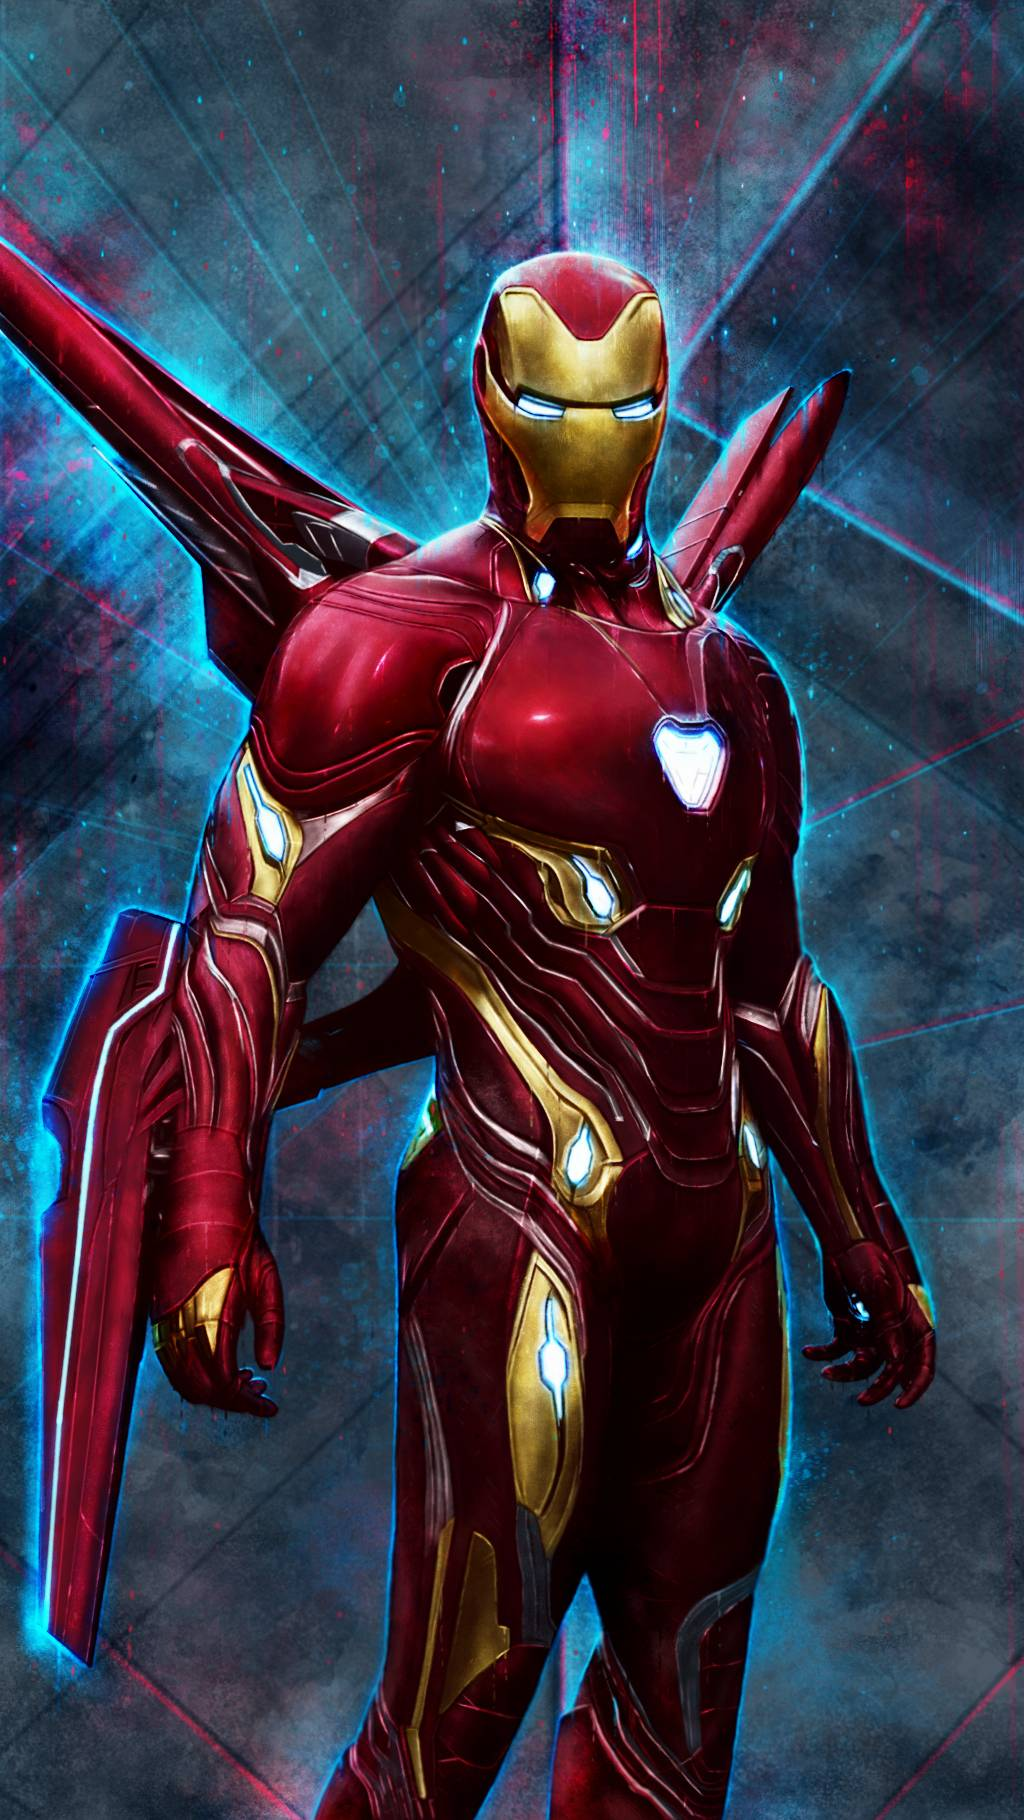 Cute Animal Wallpapers For Phones Iron Man Mark 50 Red Armor Iphone Wallpaper Iphone